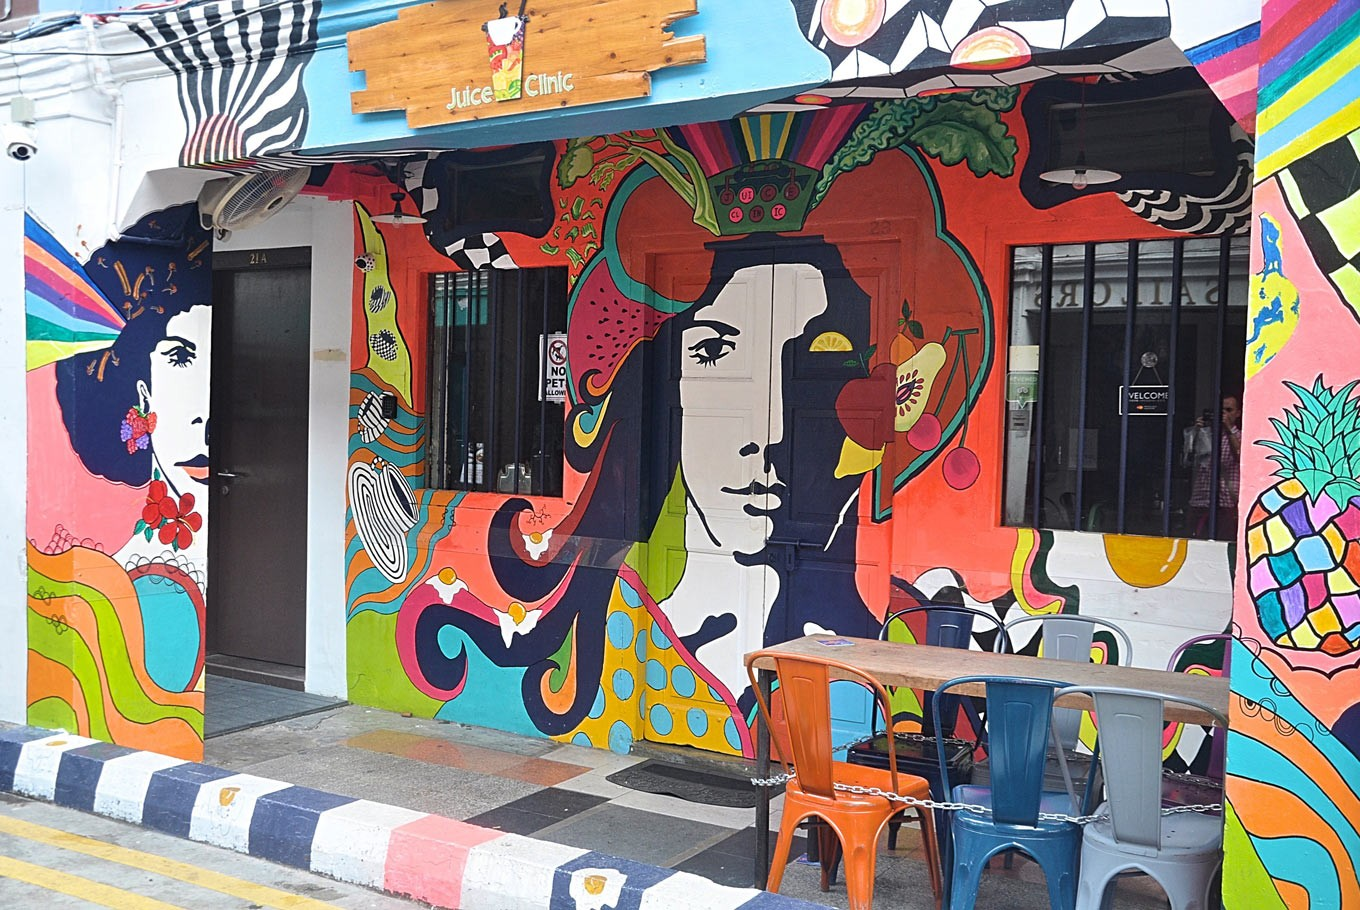 Visit these murals for your #ootd posts from Singapore